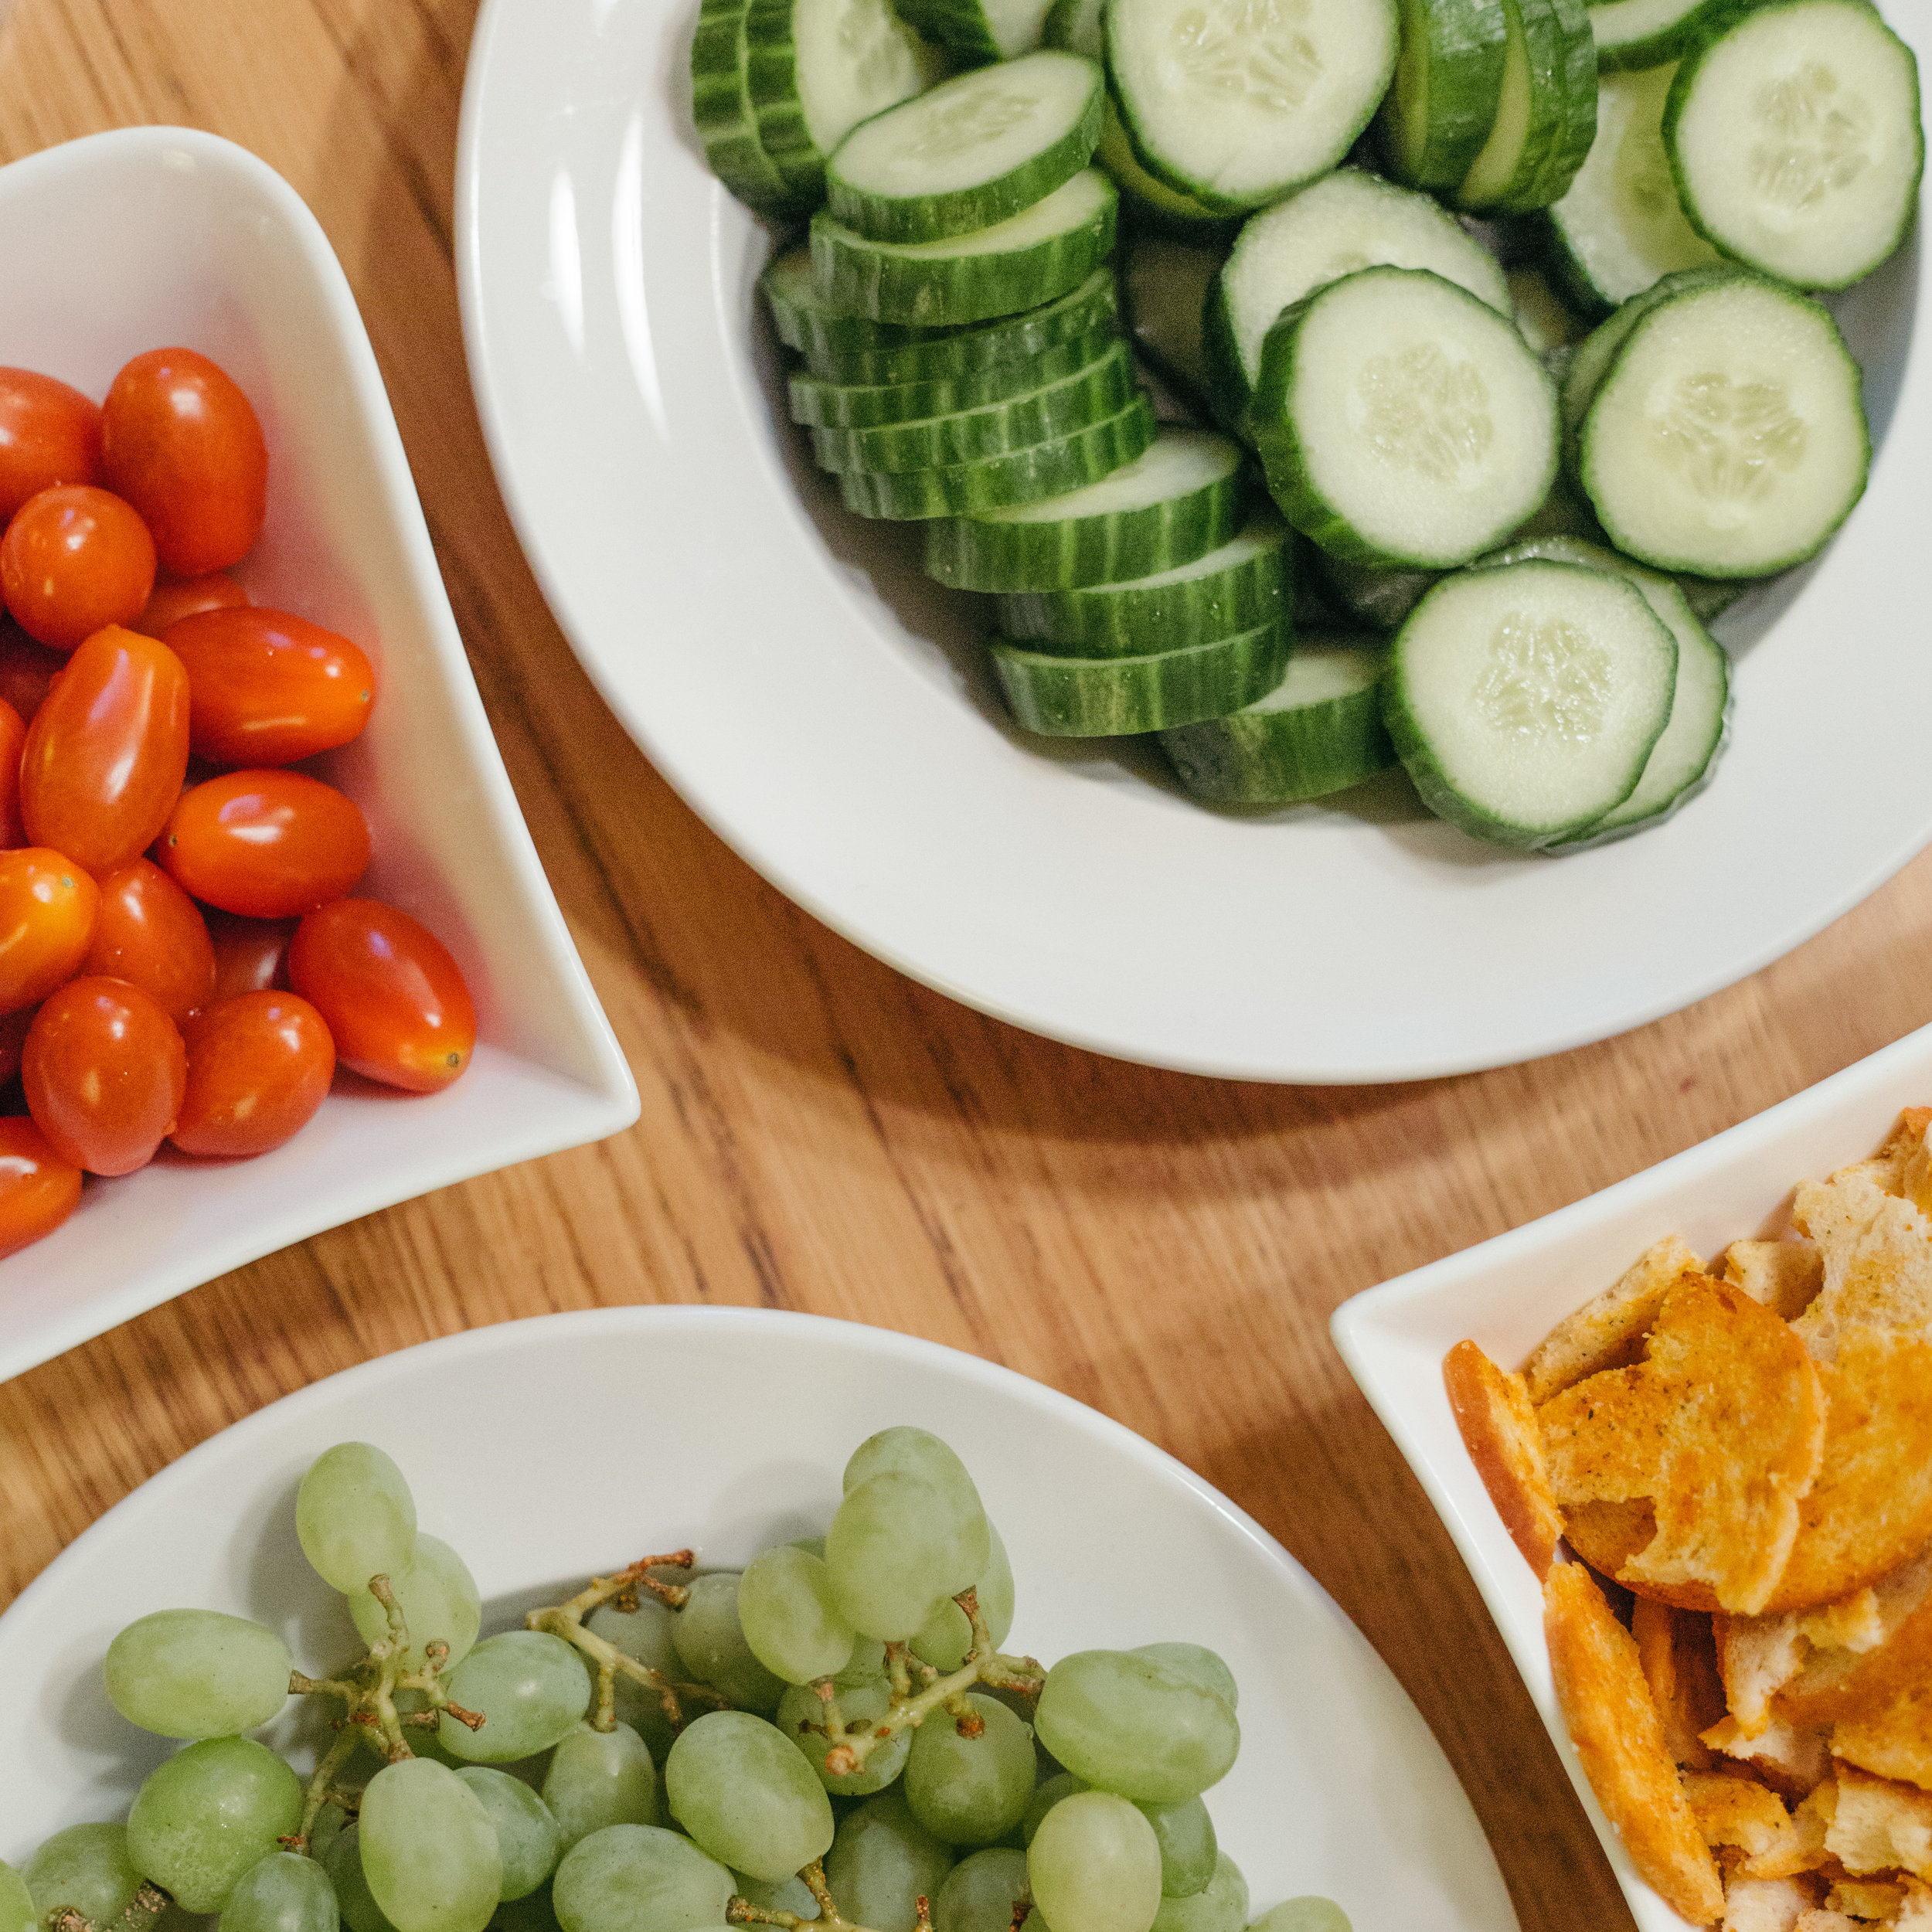 OKCPS APPROVED HEALTHY SNACK LIST 2019 - Click to download!